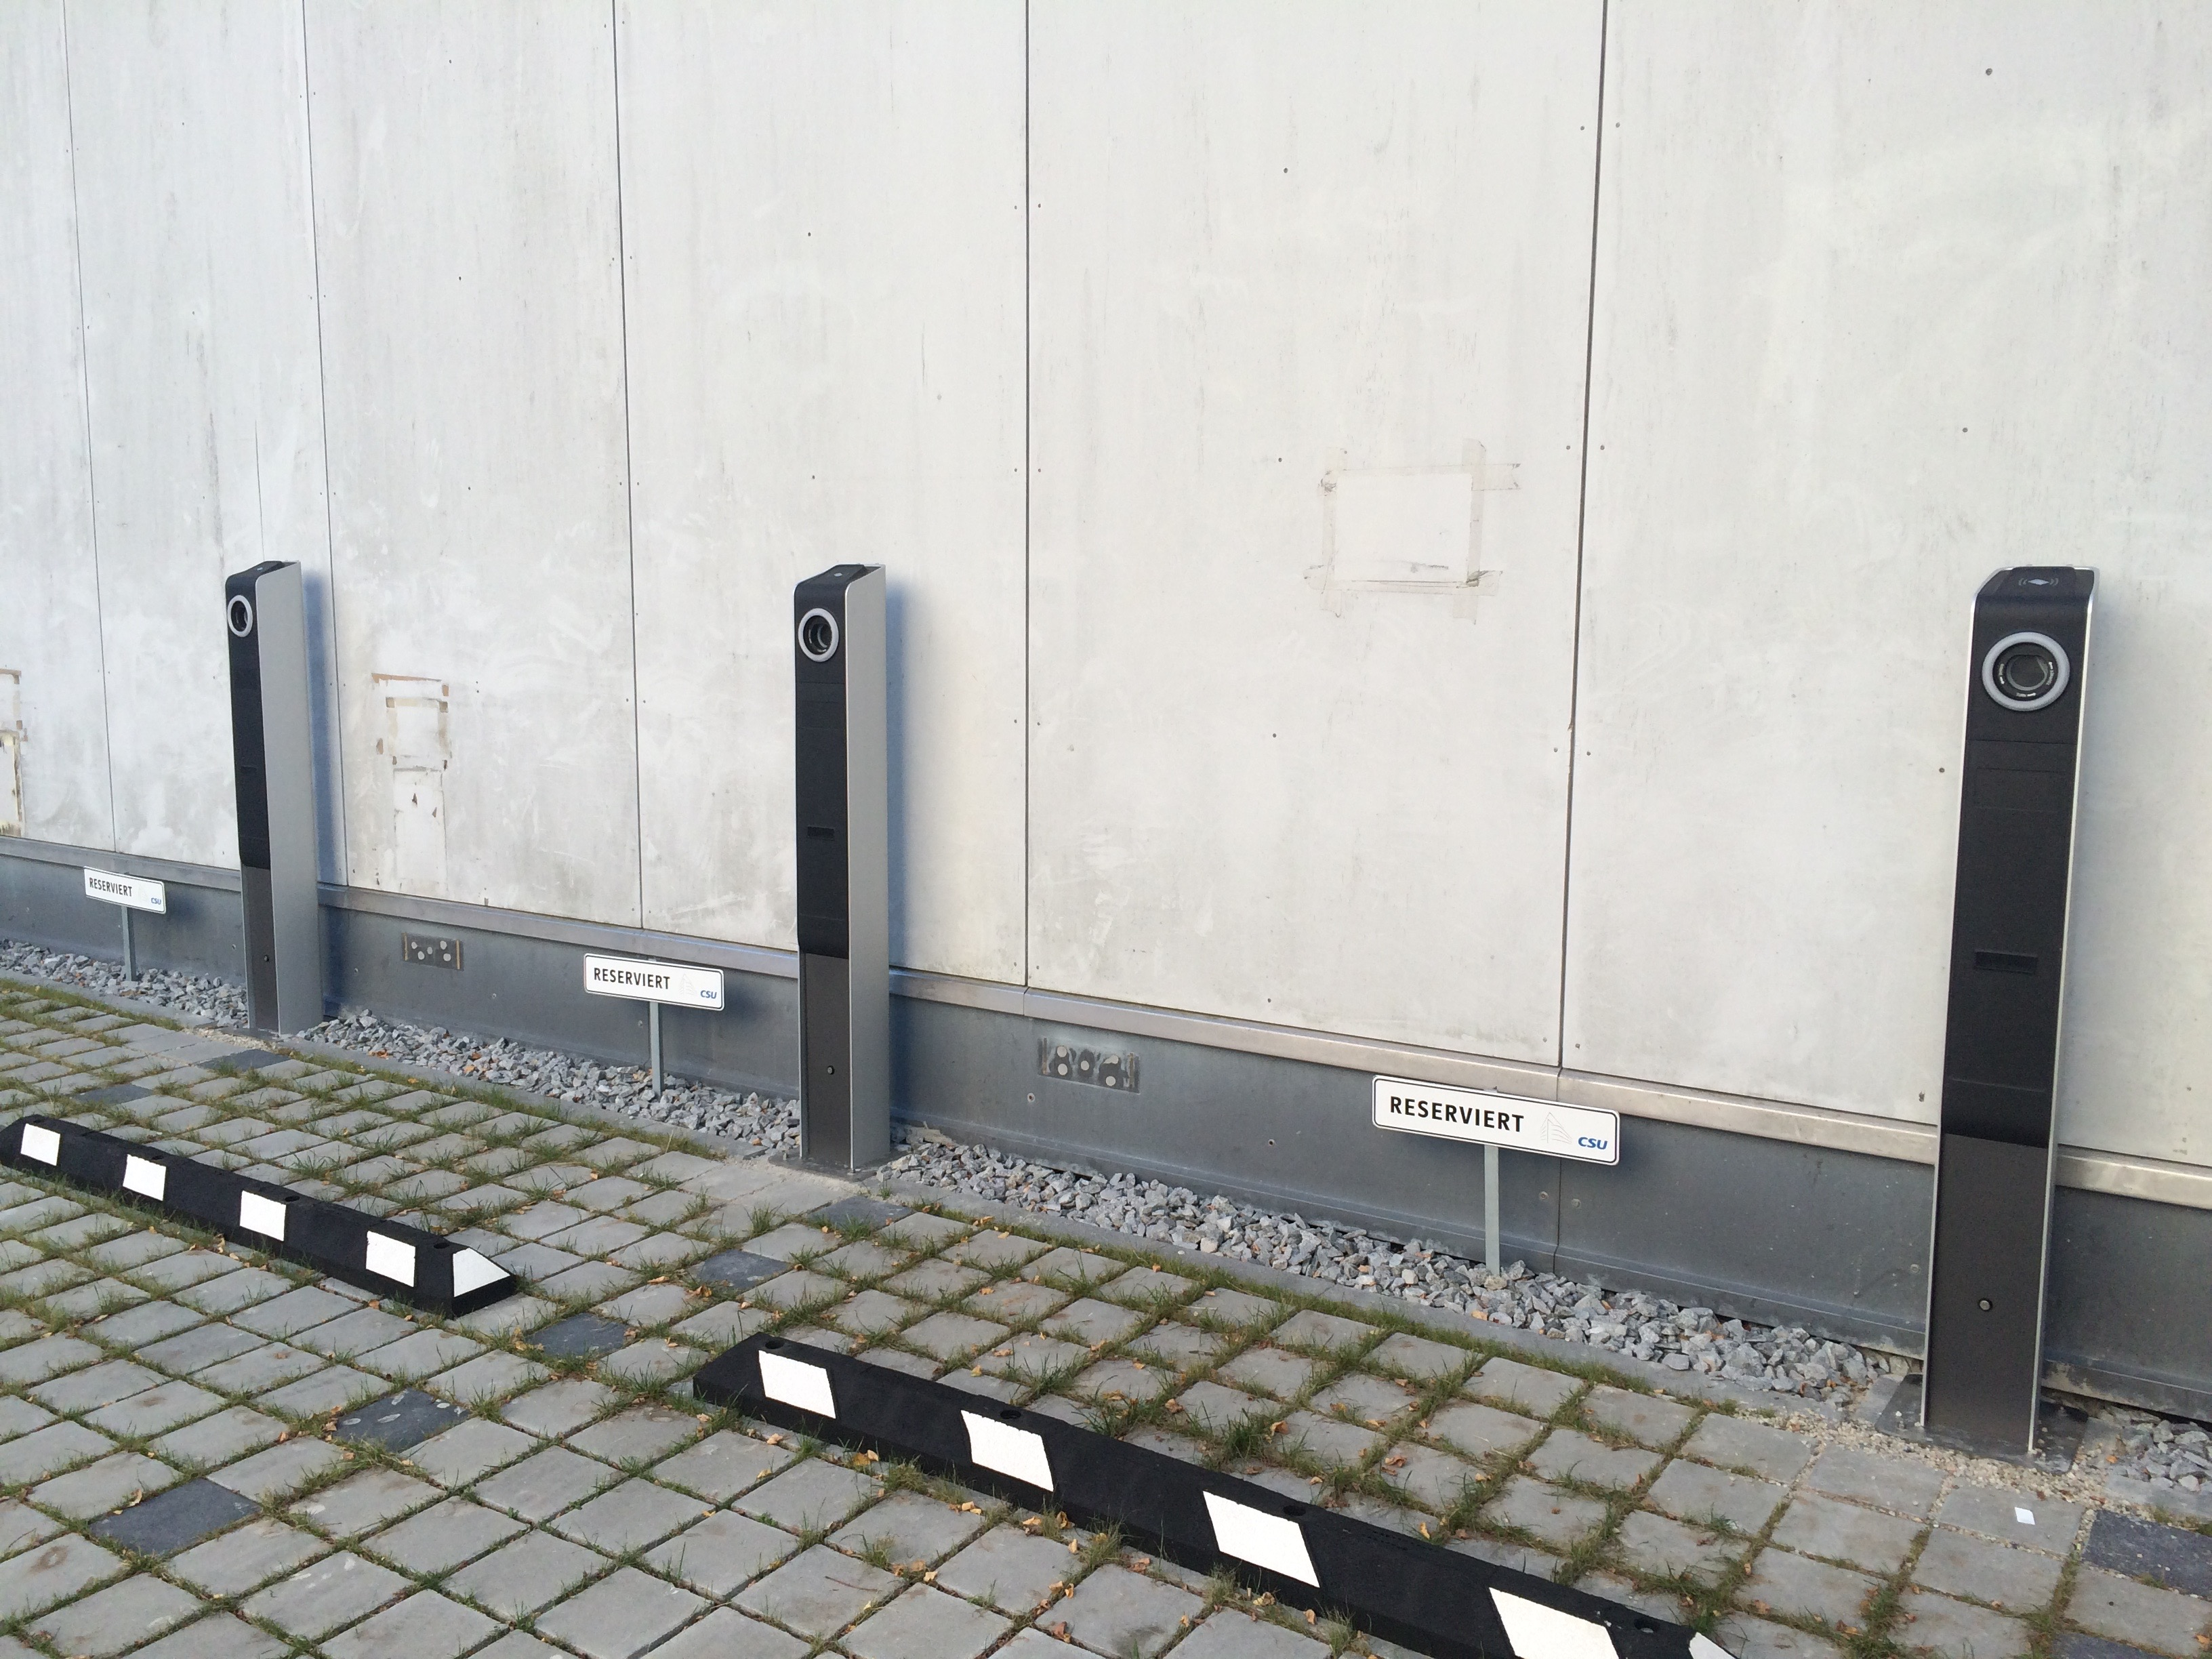 Light & Charge stations in Munich